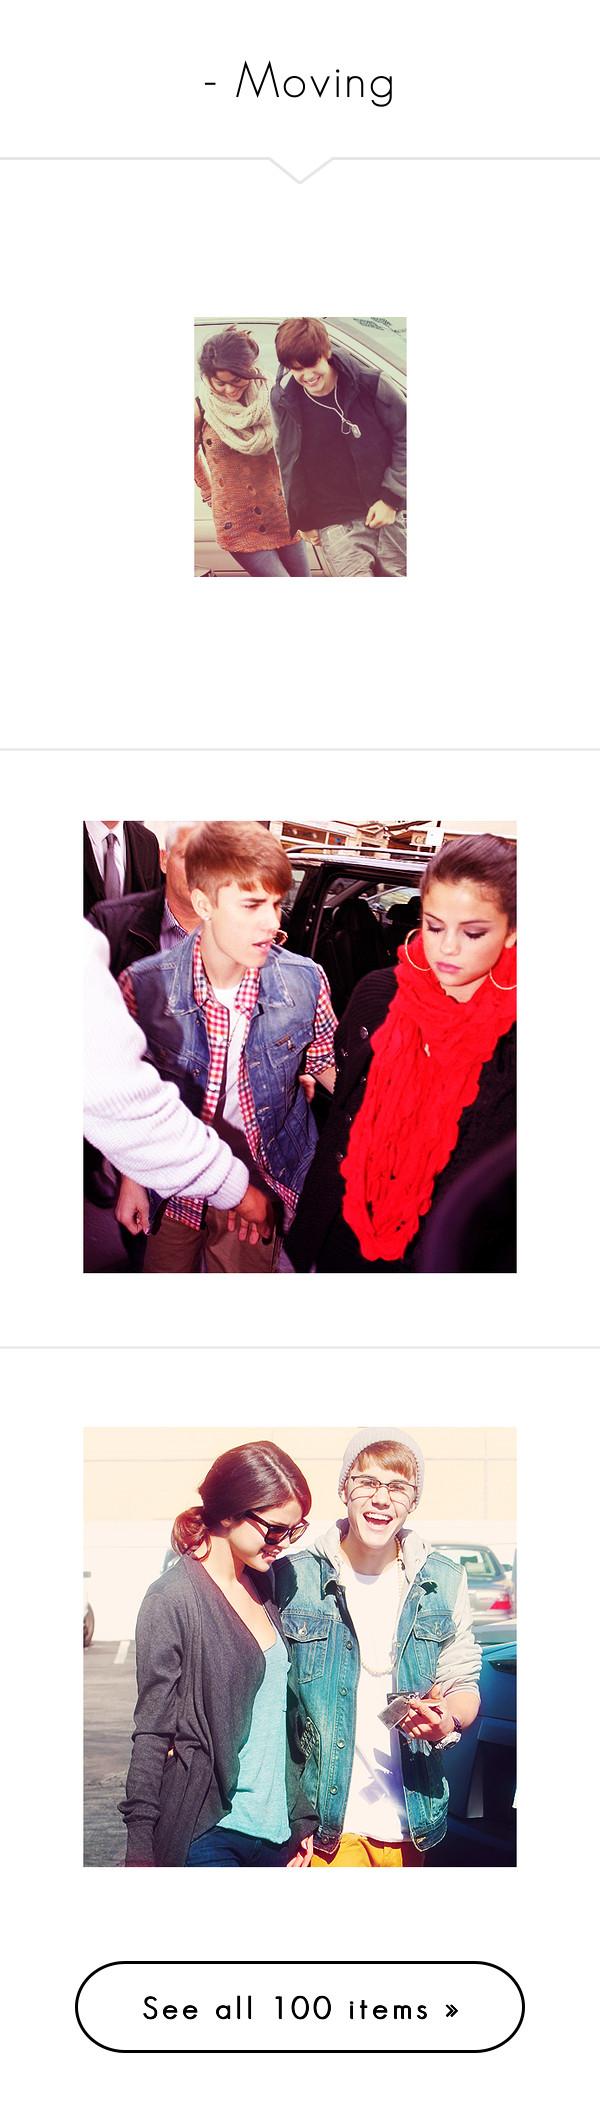 """""""- Moving"""" by obeyfucklena ❤ liked on Polyvore featuring jelena, justin bieber, selena, selena gomez, jelena., justin, drawings, desenho, extra and fillers"""